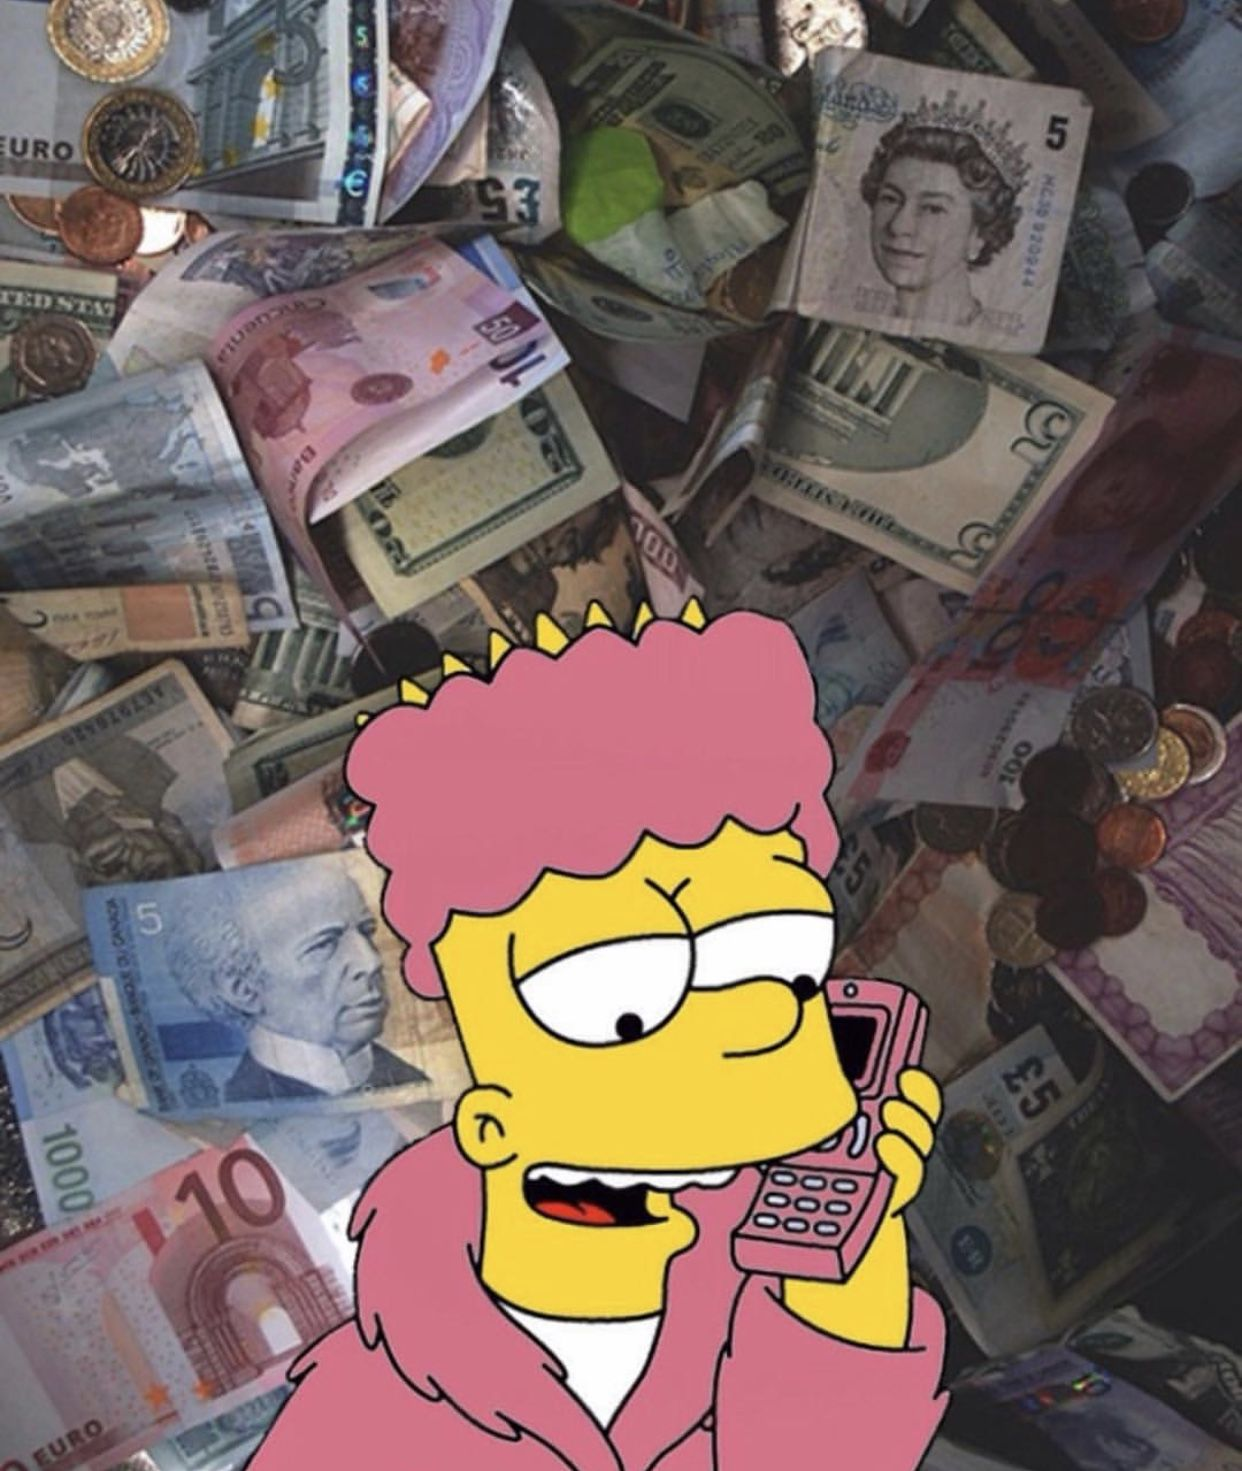 Pin By 𝓷𝓲𝓸𝓶𝓲 On Moods Simpson Wallpaper Iphone Cute